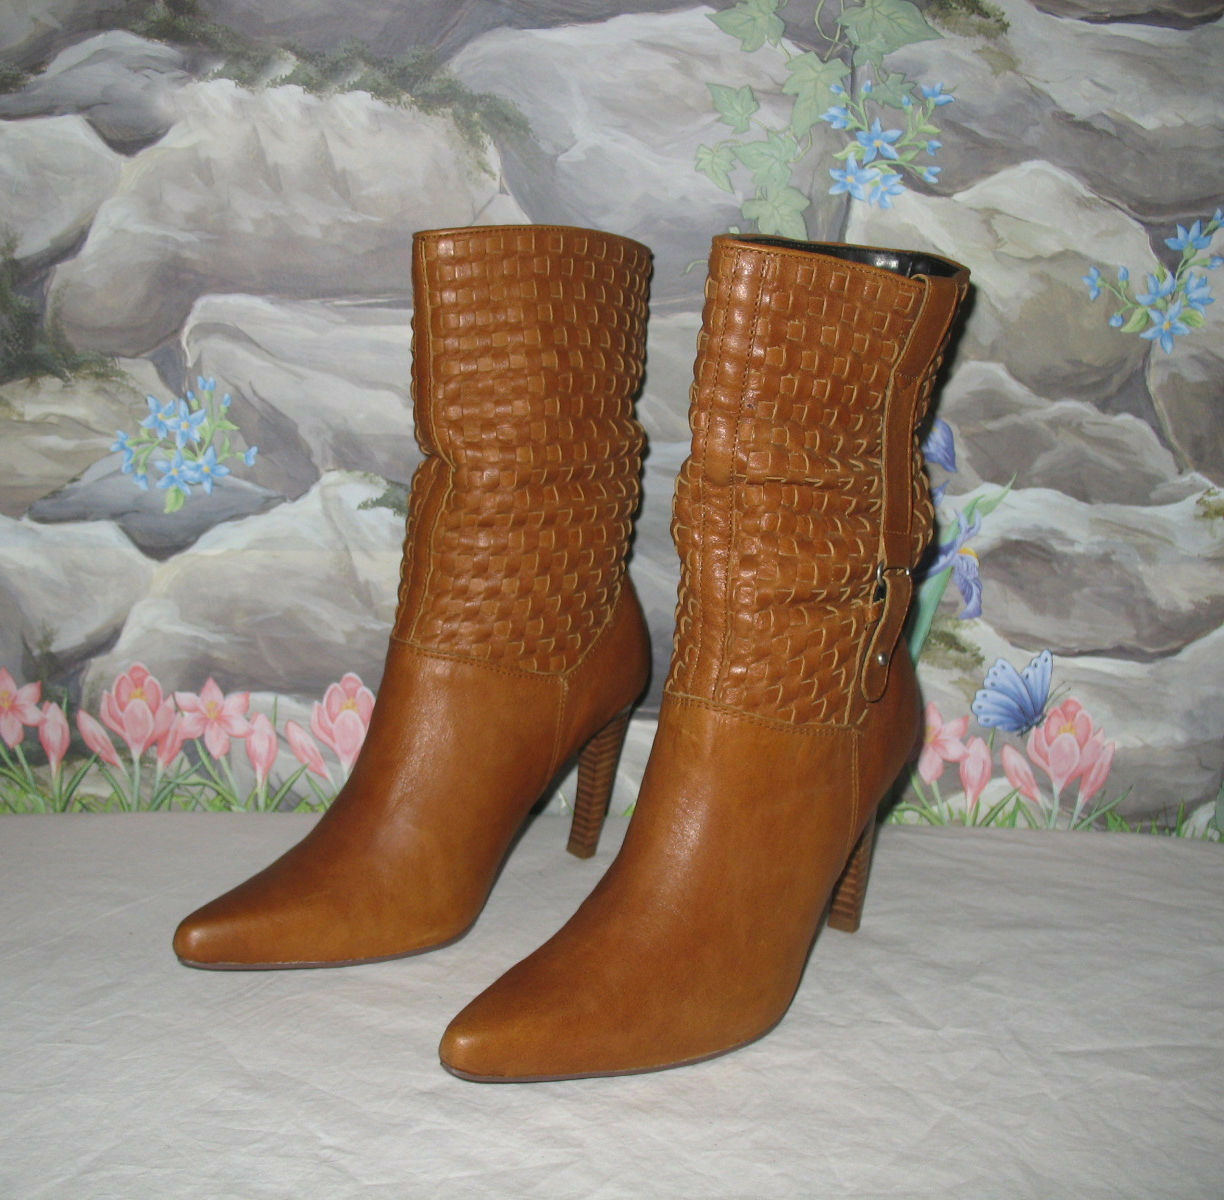 New NANA 'Keiko' Woven Tan Leather w Side Belt Low Calf Boots sz 7.5